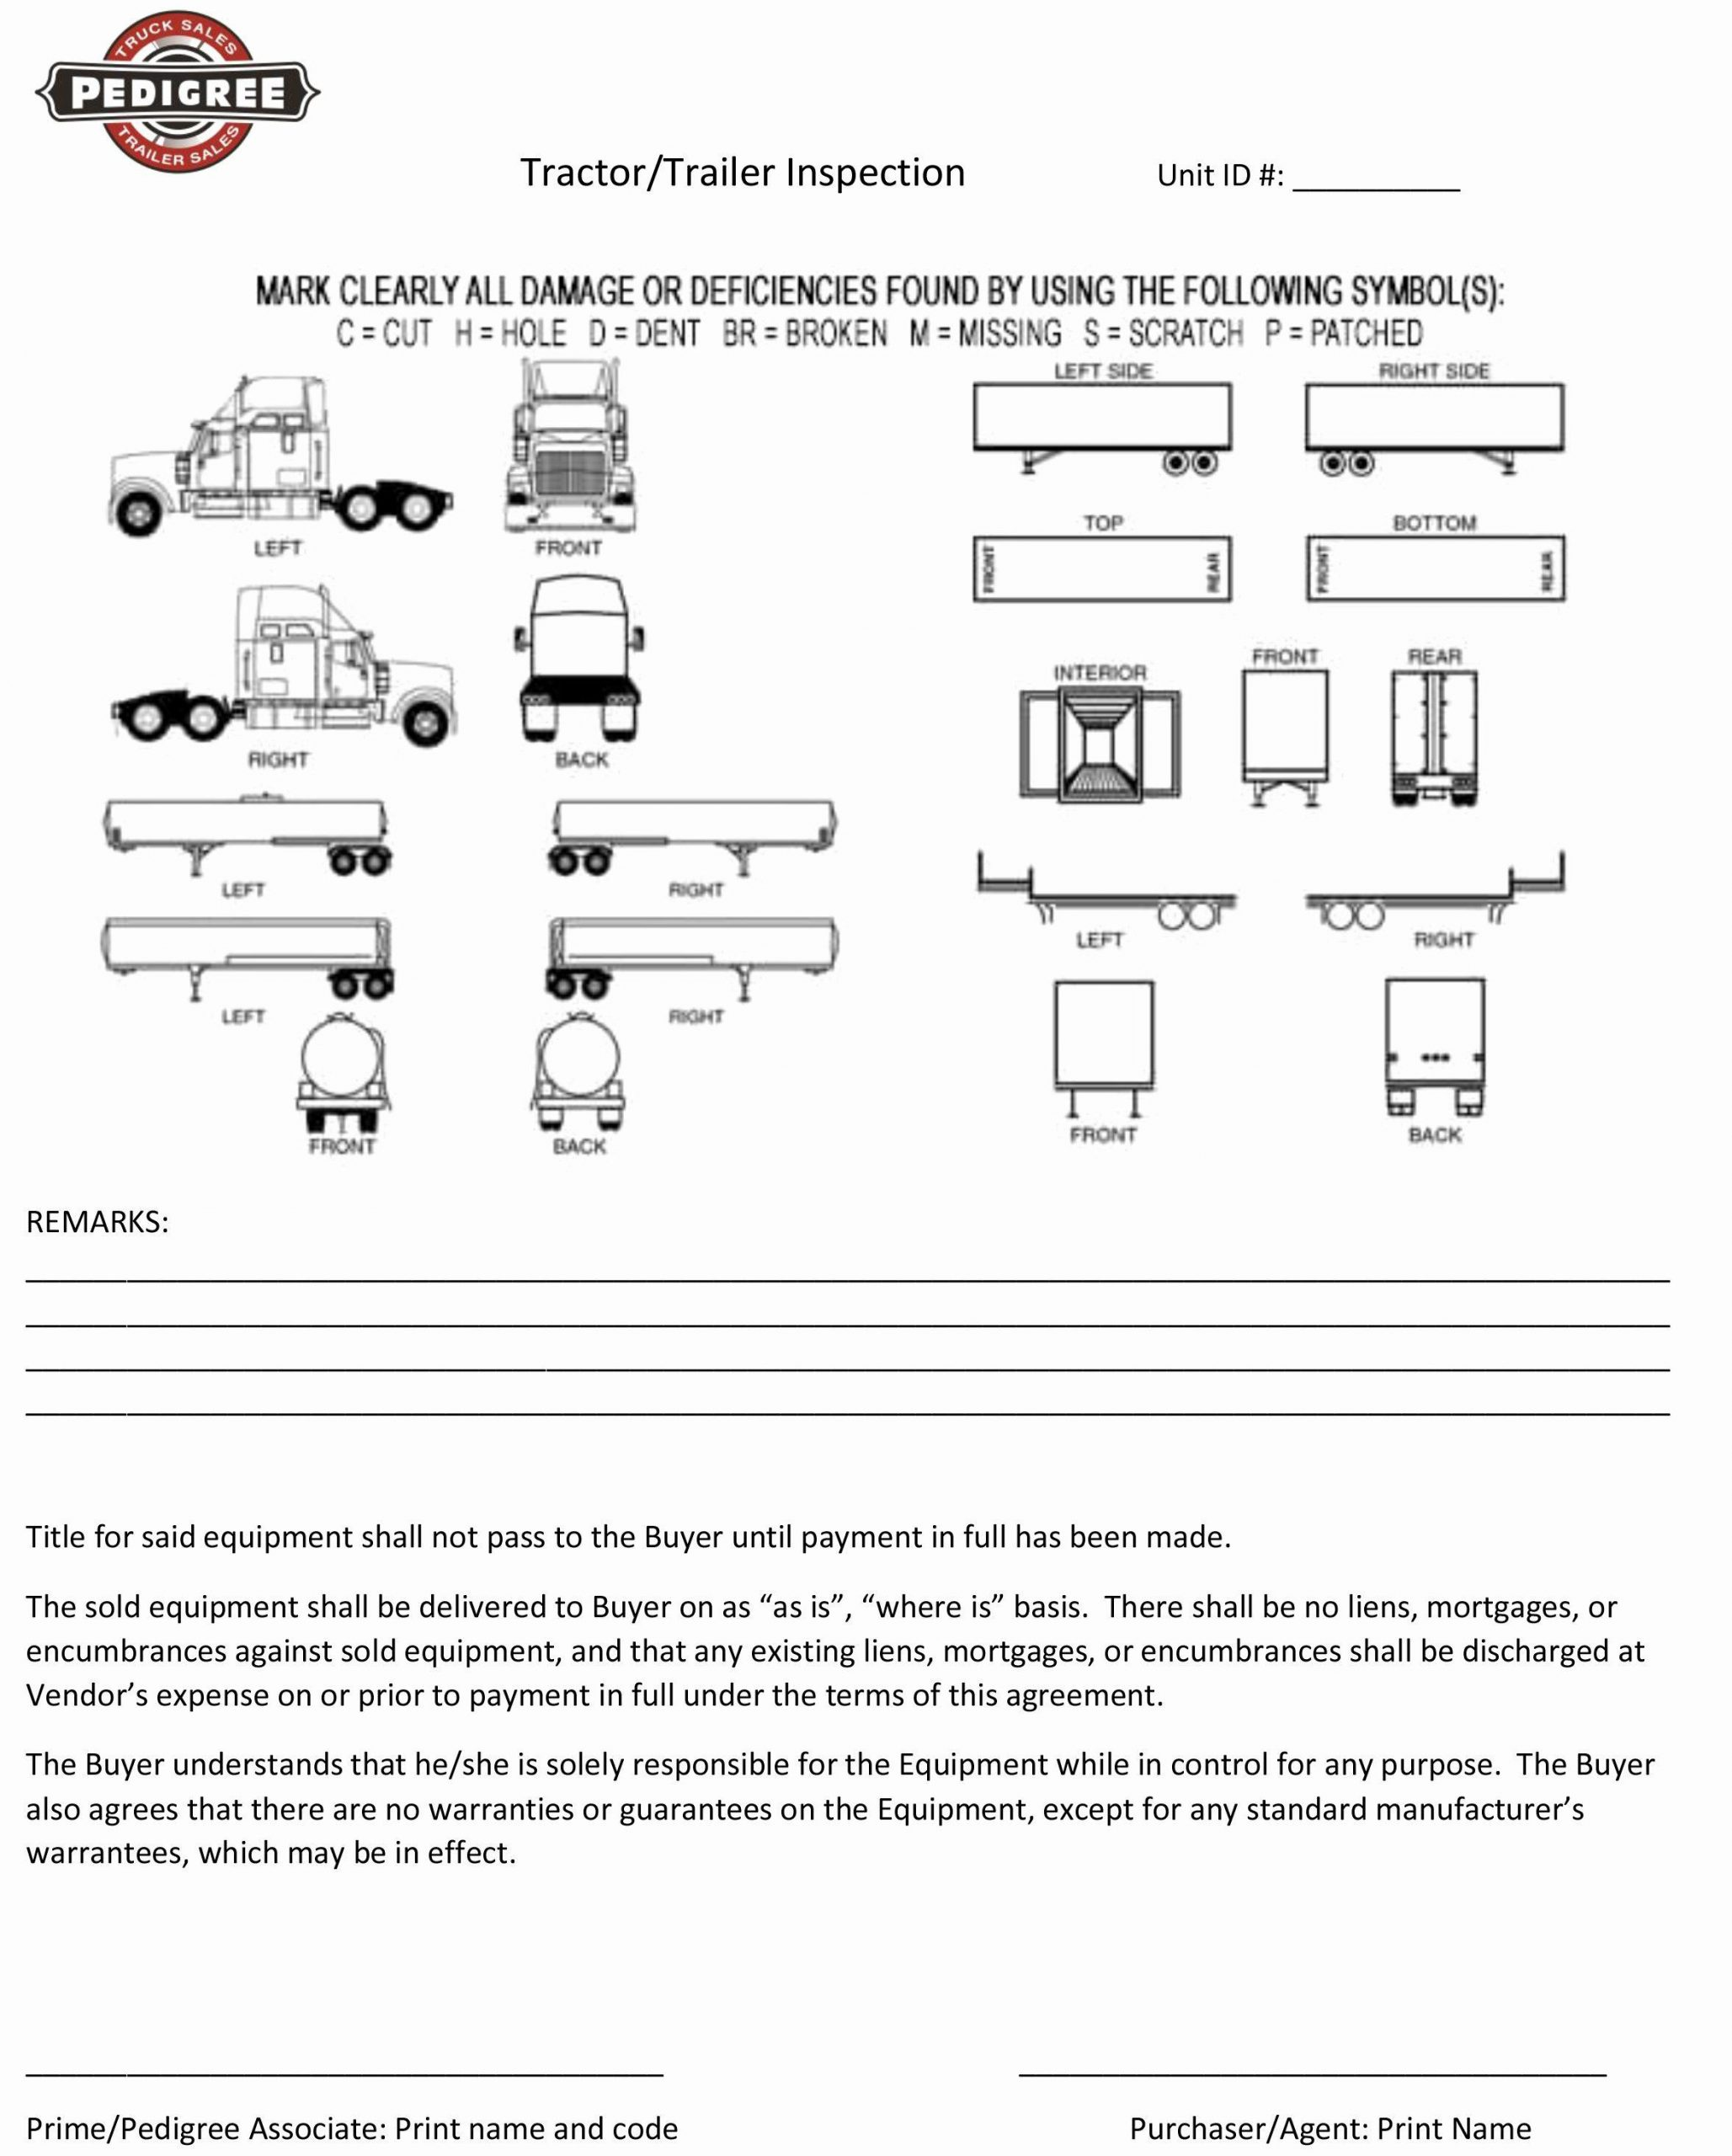 Truck Inspection form Template